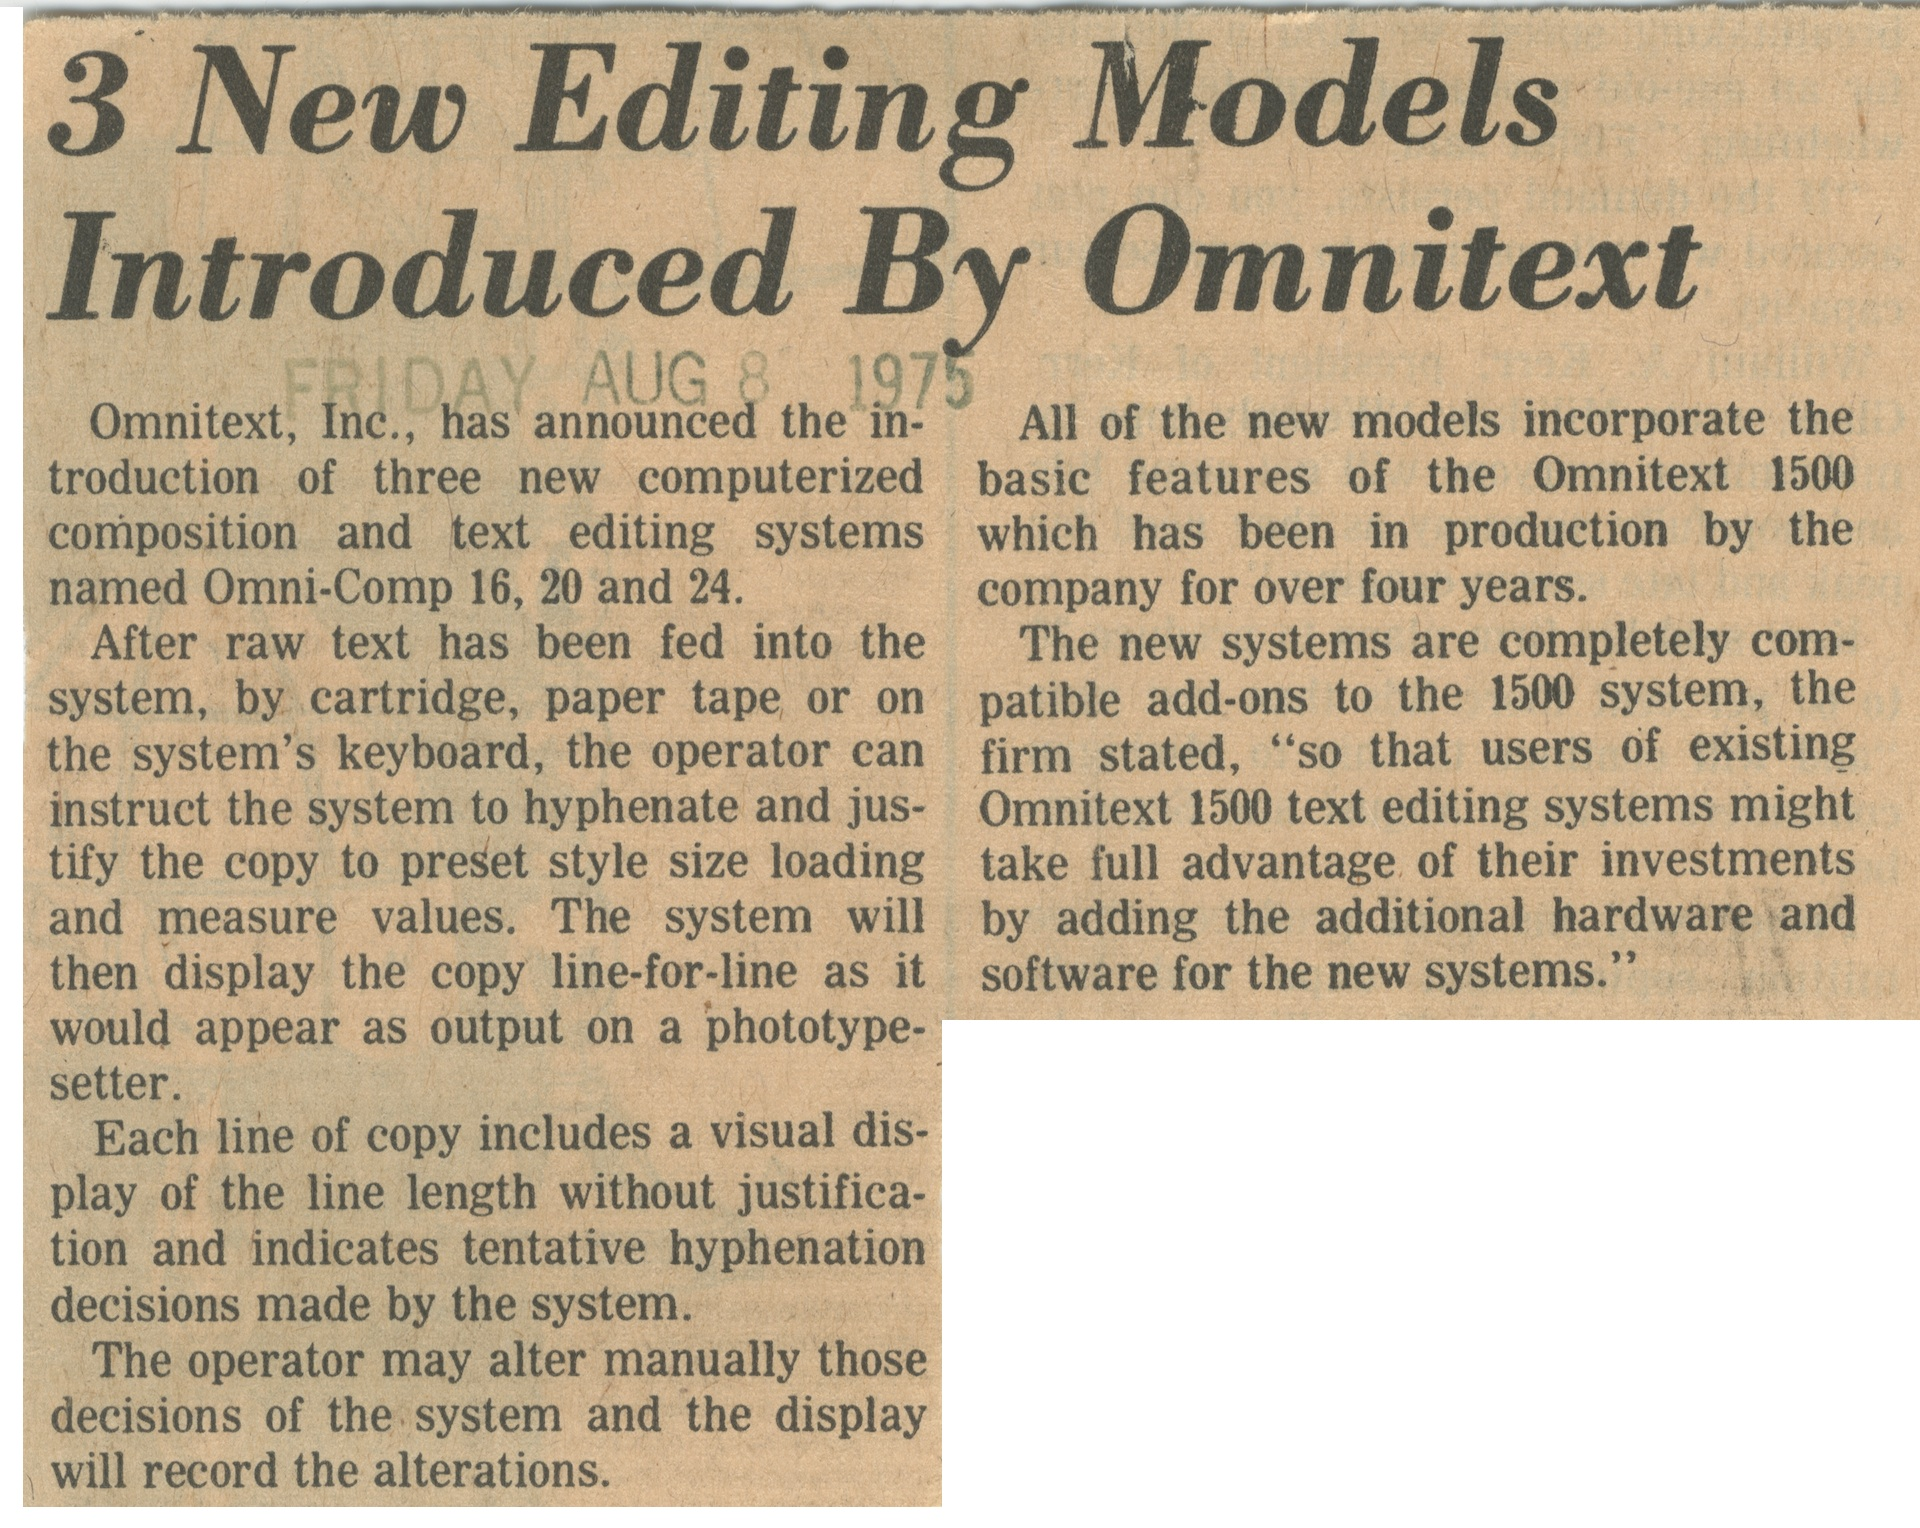 3 New Editing Models Introduced by Omnitext image